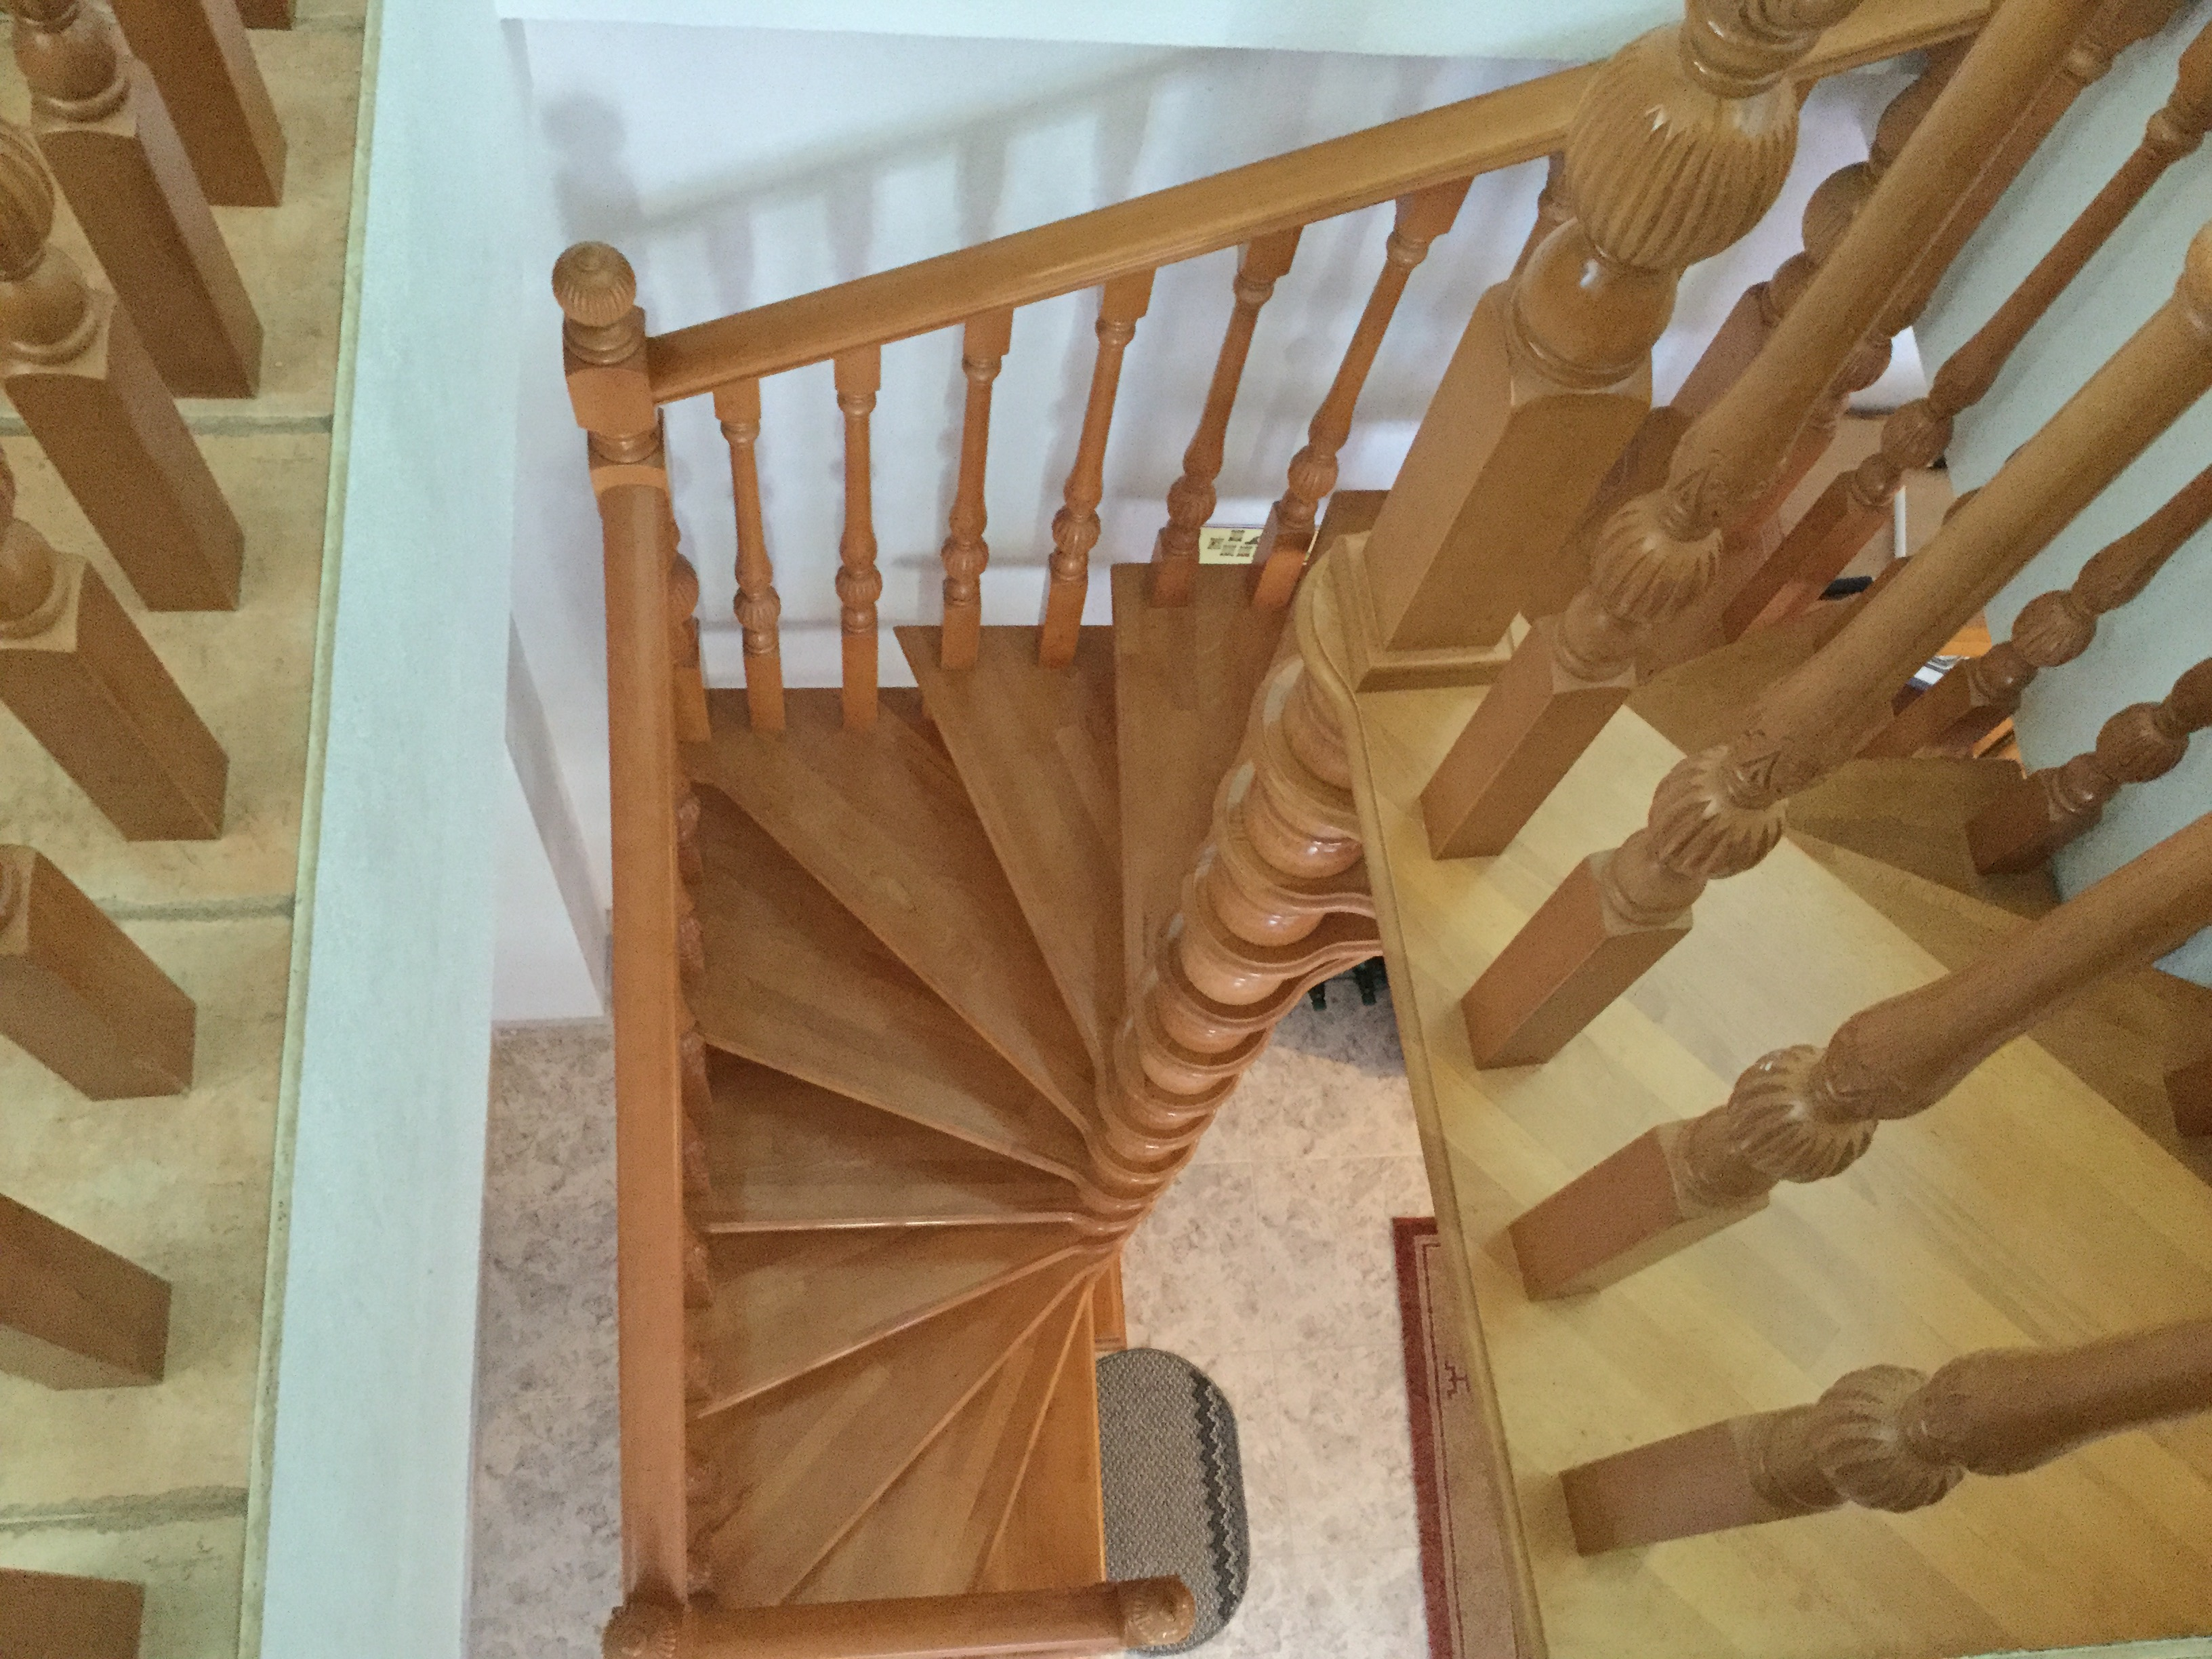 For Sale Spiral Internal Staircase Buy And Sell Items In Rojales Rojales Forum Costa Blanca Forum In The Alicante Province Of Spain